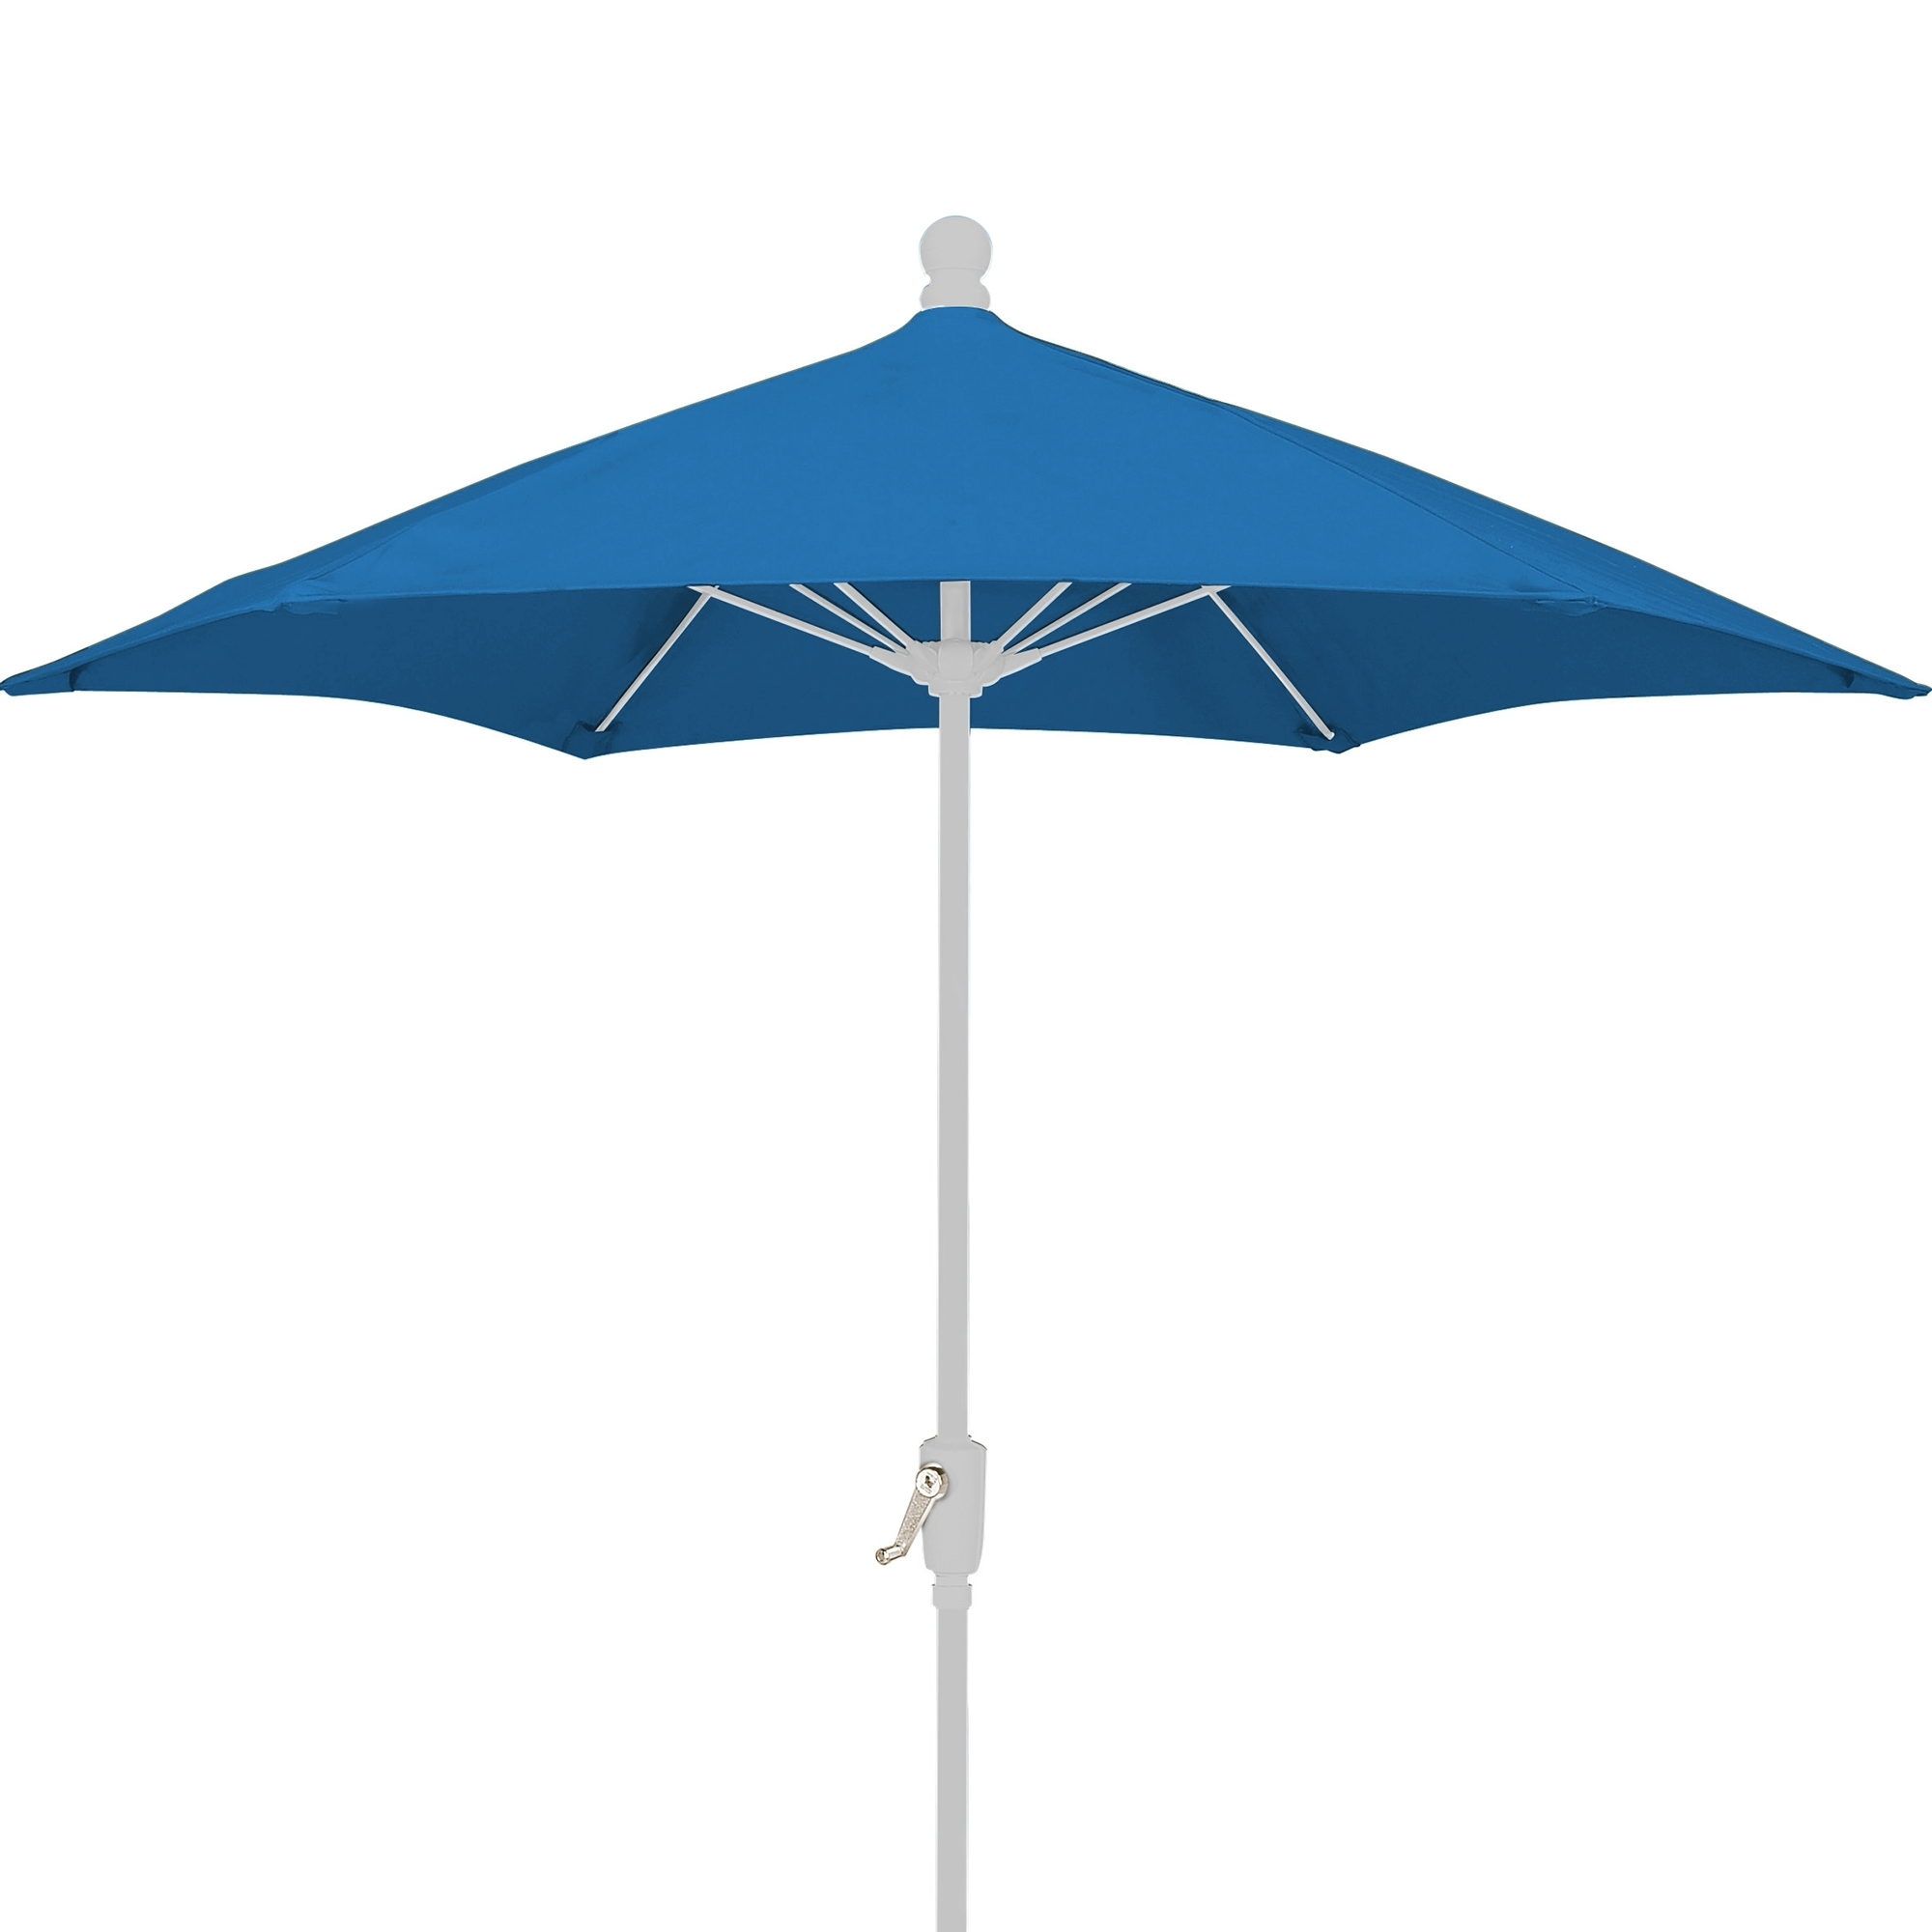 Patio Umbrellas With White Pole Regarding Well Liked 7.5 Ft Crank Lift Market Style Patio Umbrella With White Pole (Gallery 6 of 20)